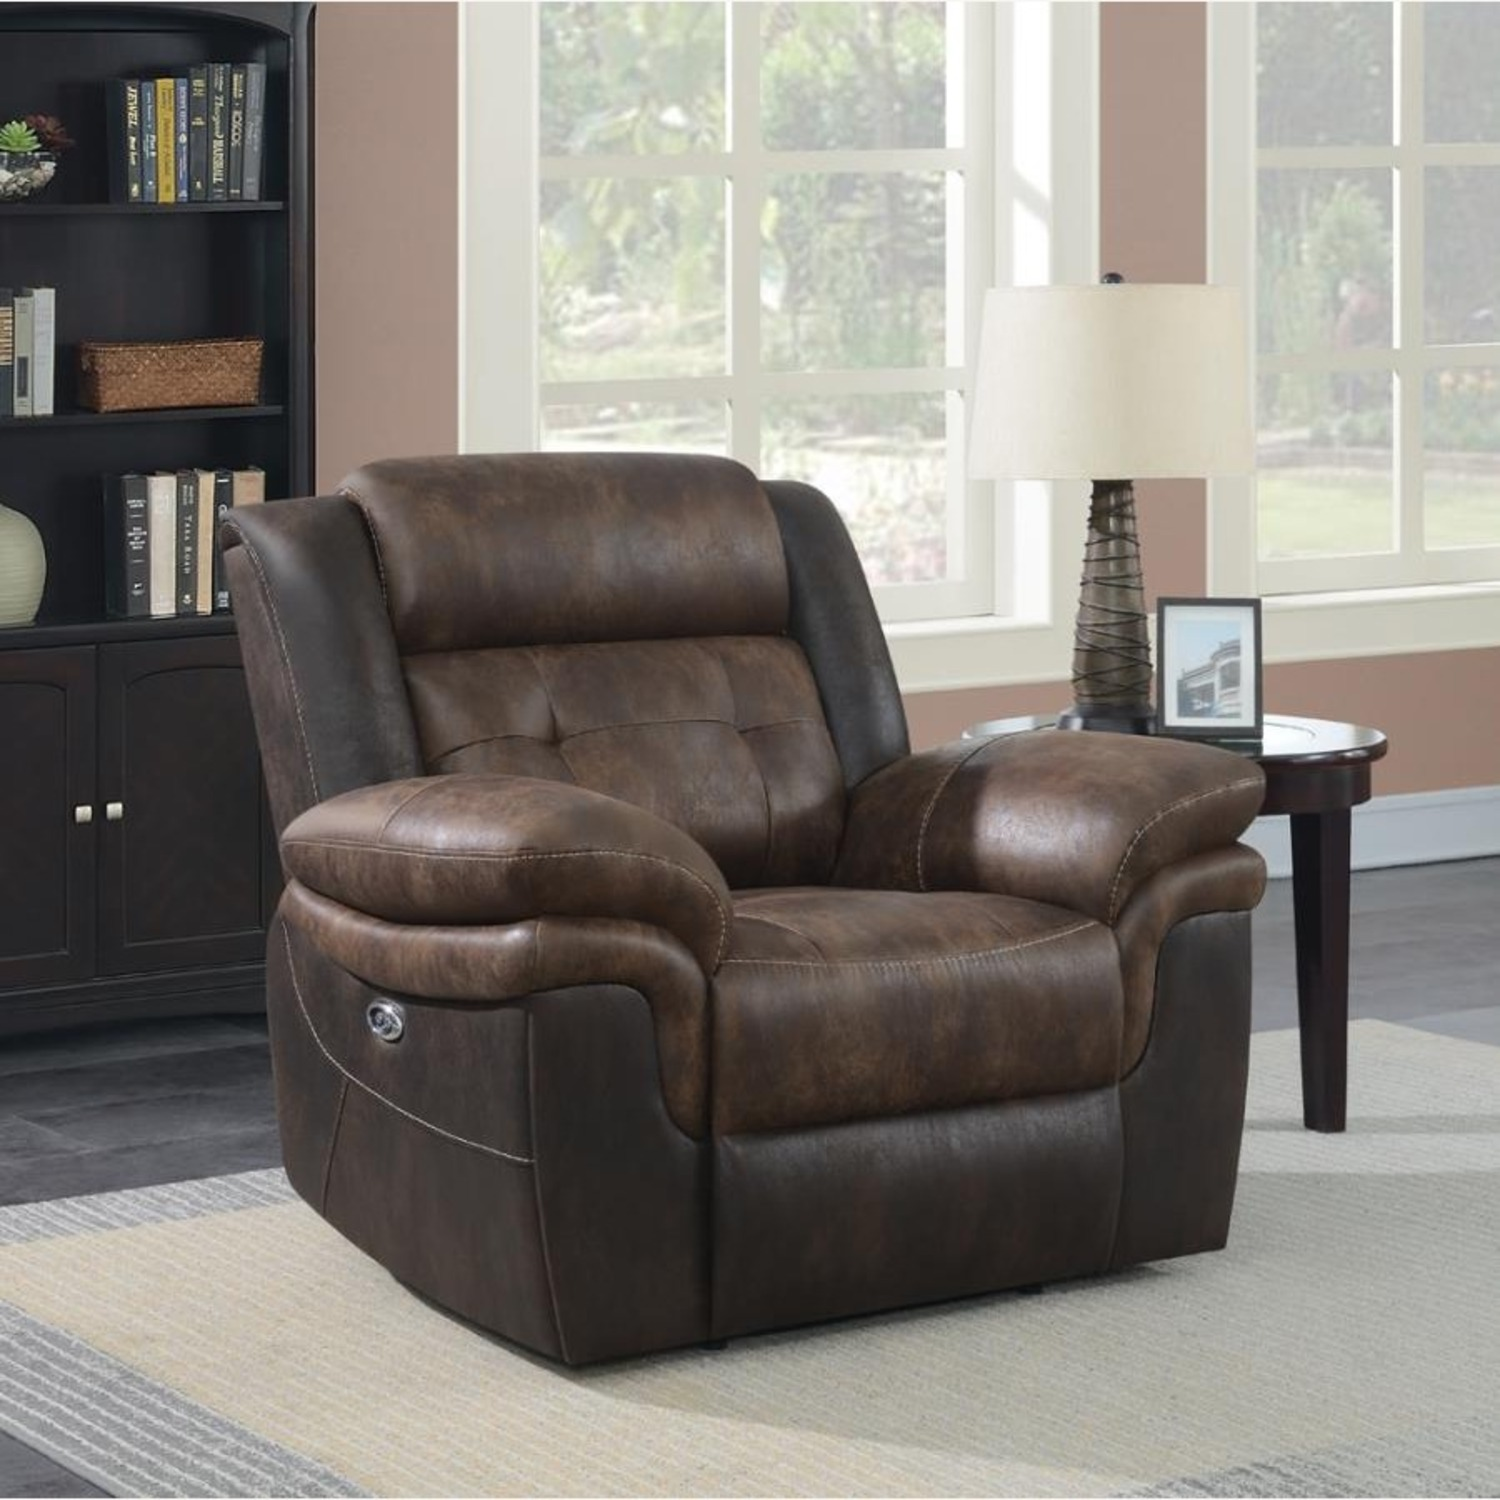 Power Recliner W/ Power Outlet In Chocolate Finish - image-9